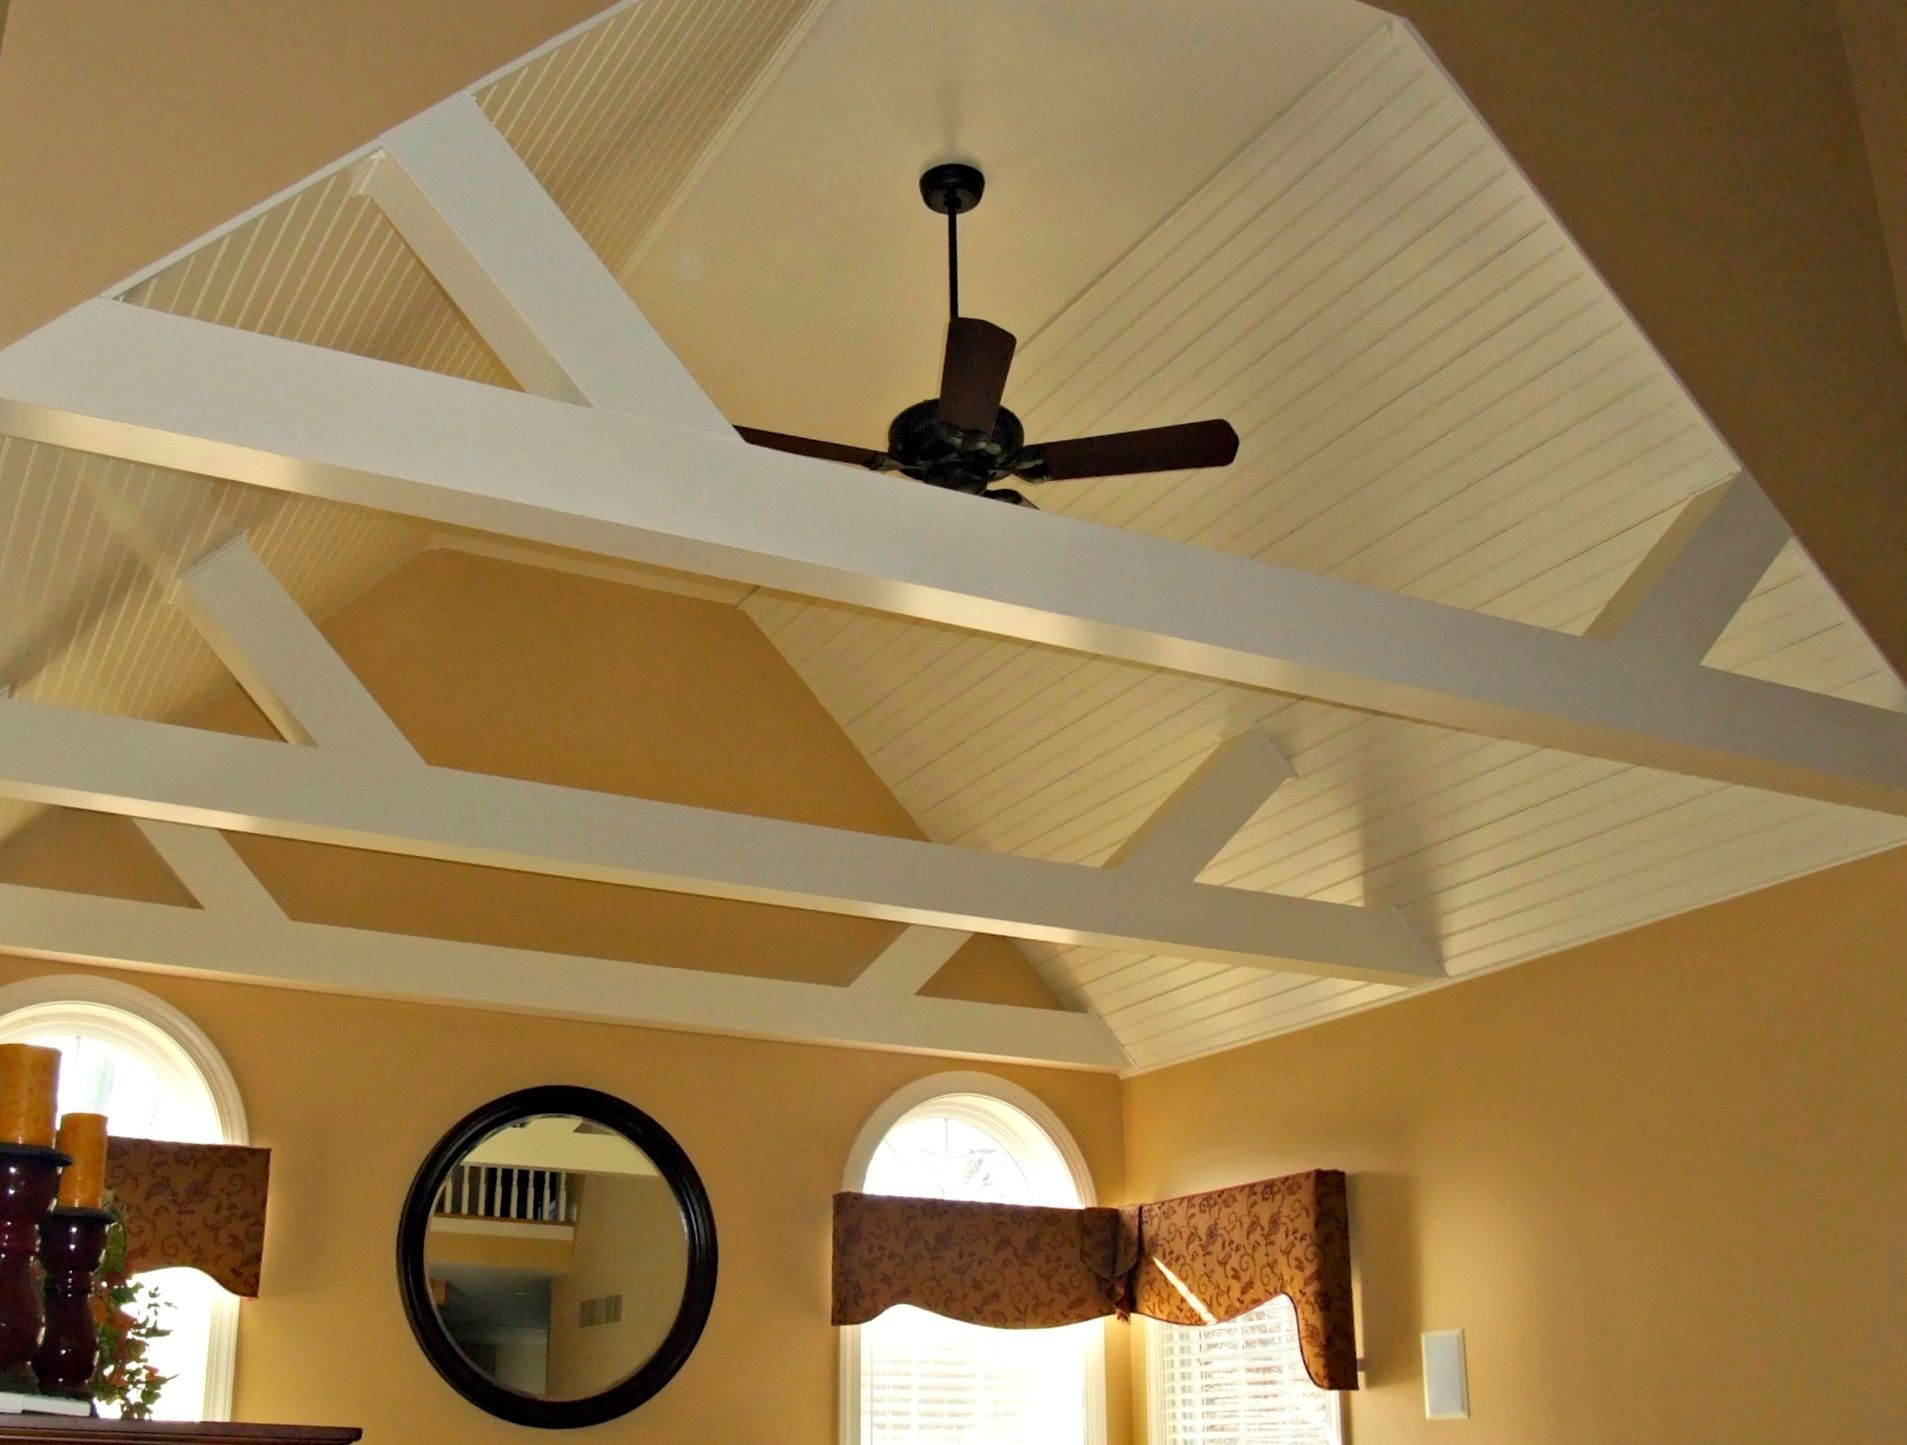 exciting wood ceiling sebring remodeling design faux ideas for services home ceilings beams decorative